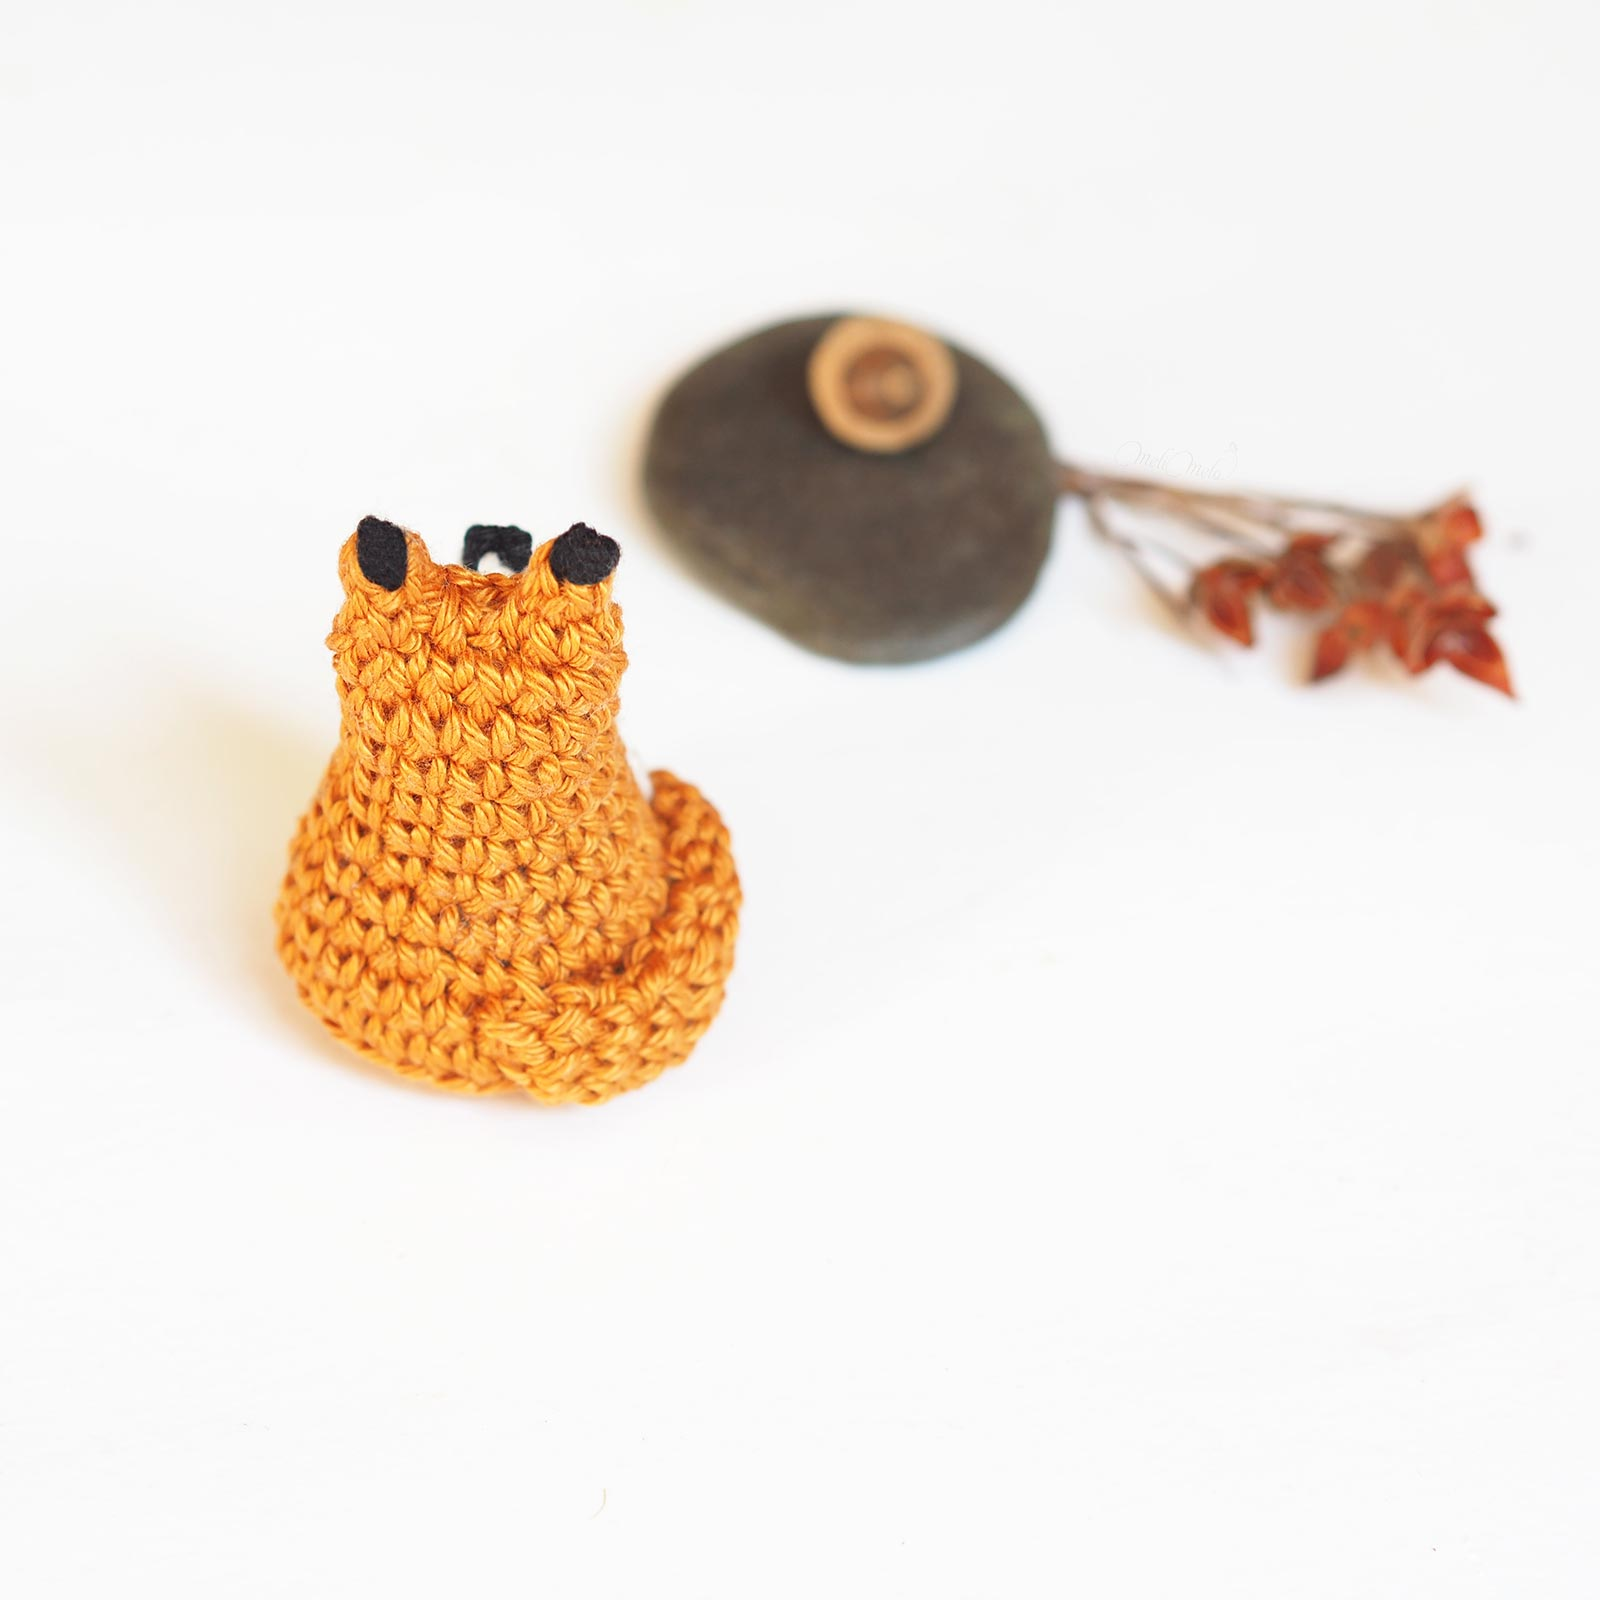 crochet mini renard tiny fox tuto DIY Catona Scheepjes dos laboutiquedemelimelo